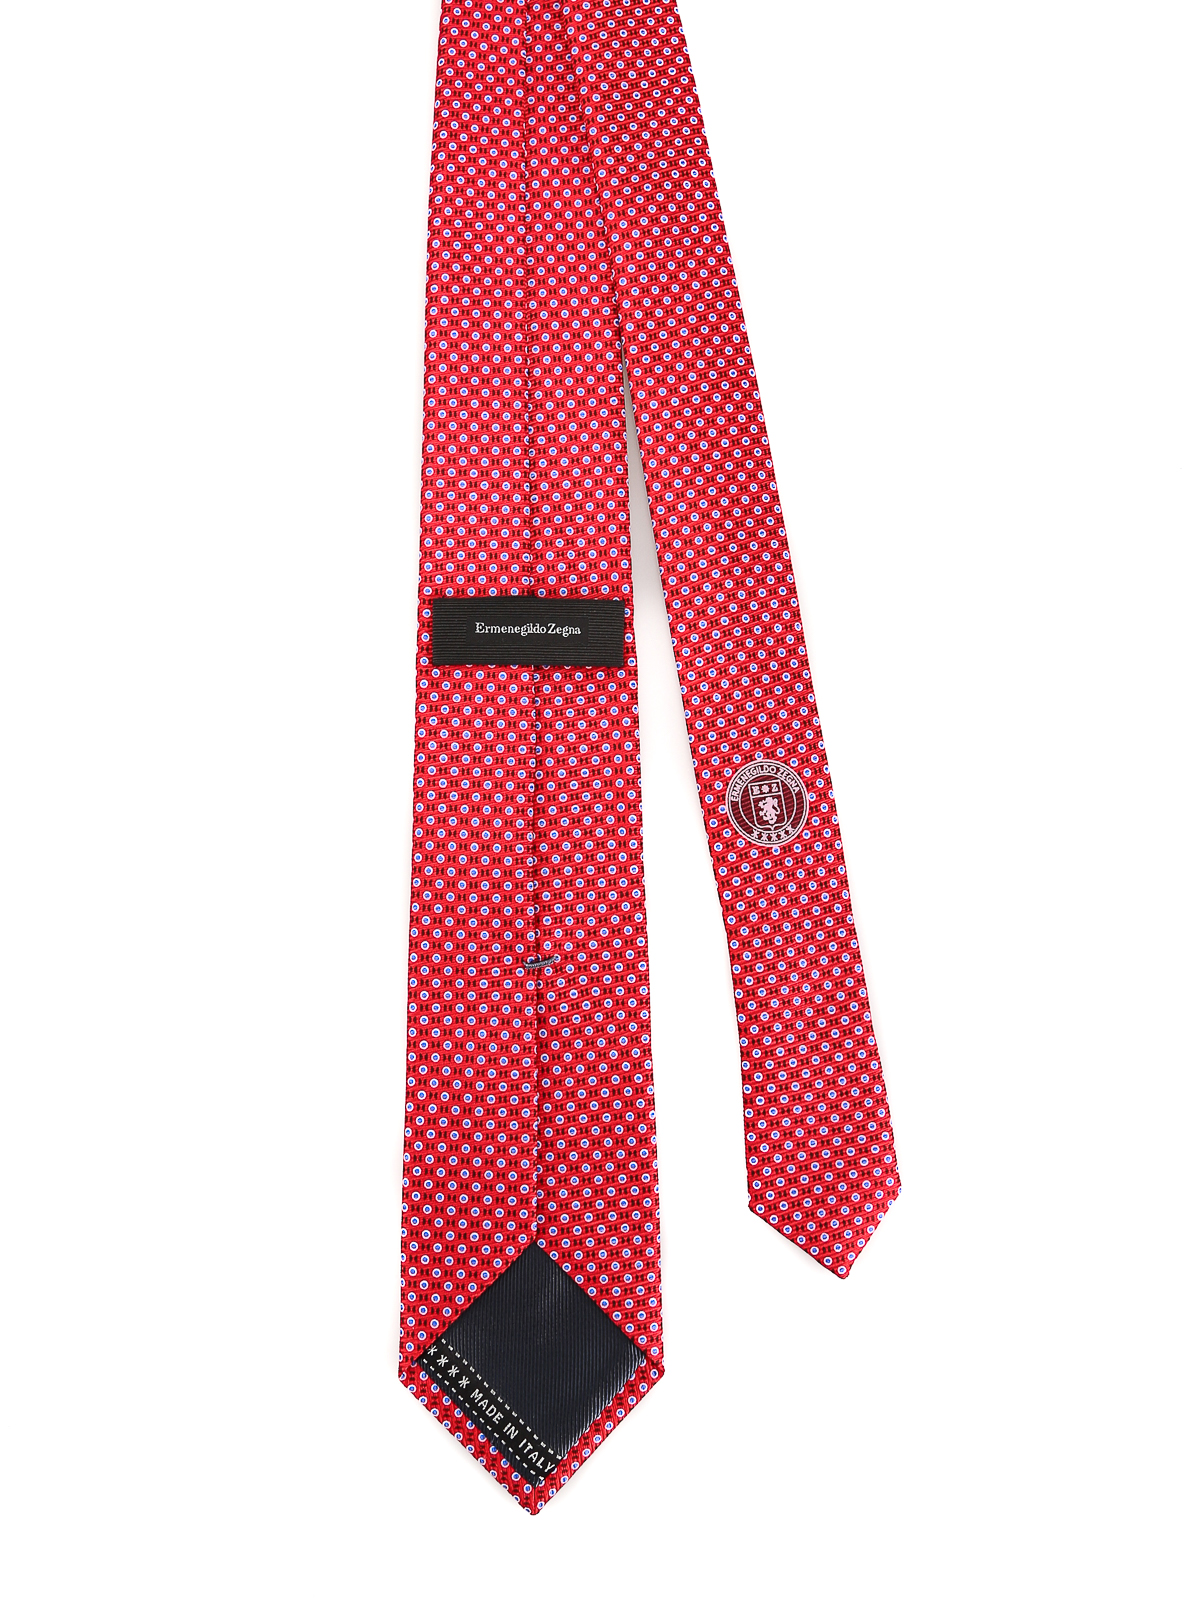 988c3671 Ermenegildo Zegna - Micro pattern red silk tie - ties & bow ...